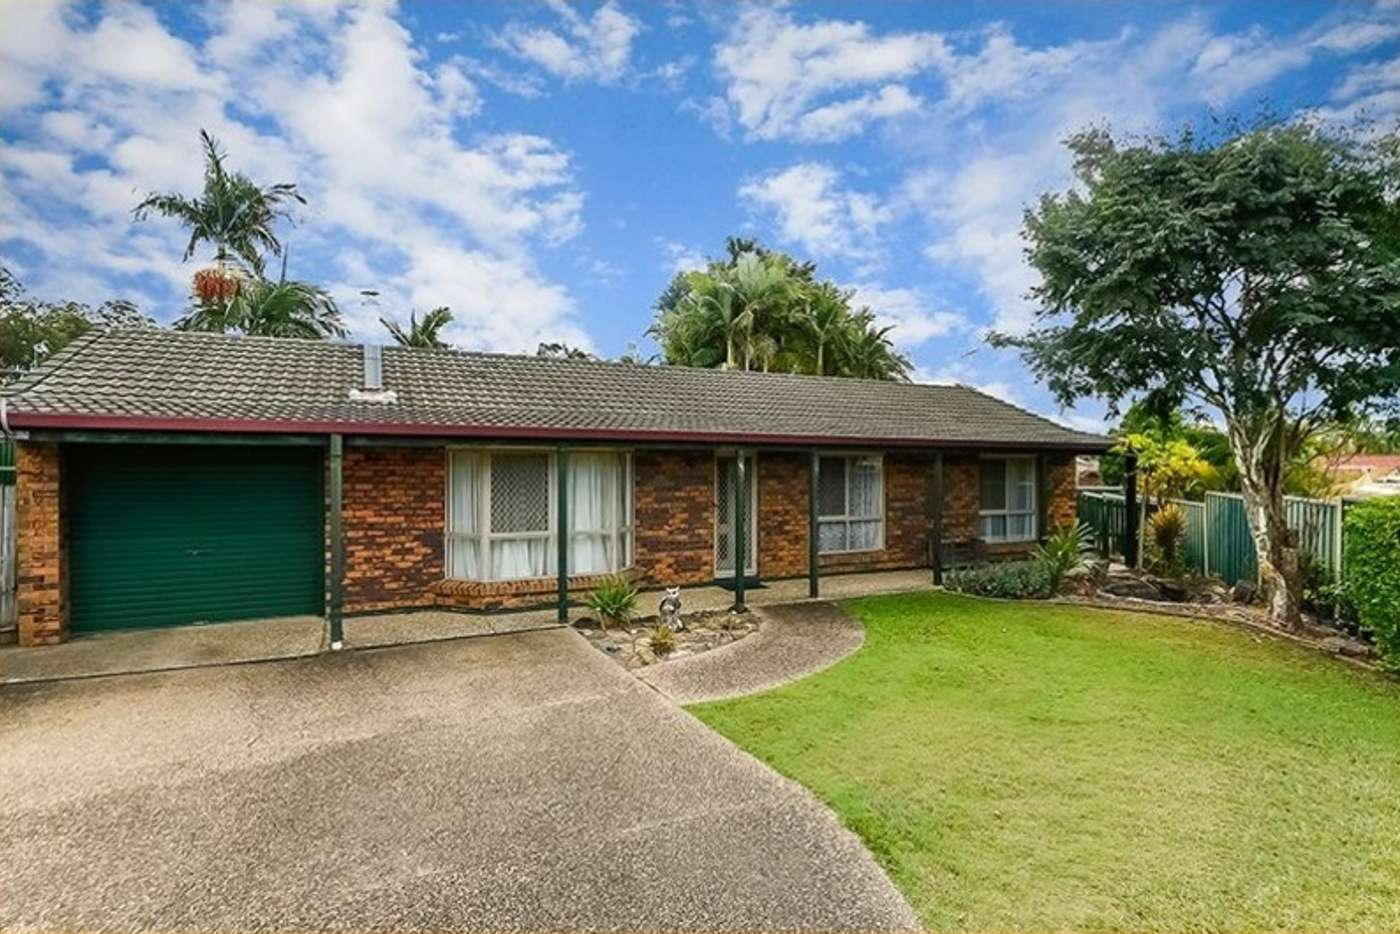 Main view of Homely house listing, 9 Julius Court, Marsden QLD 4132